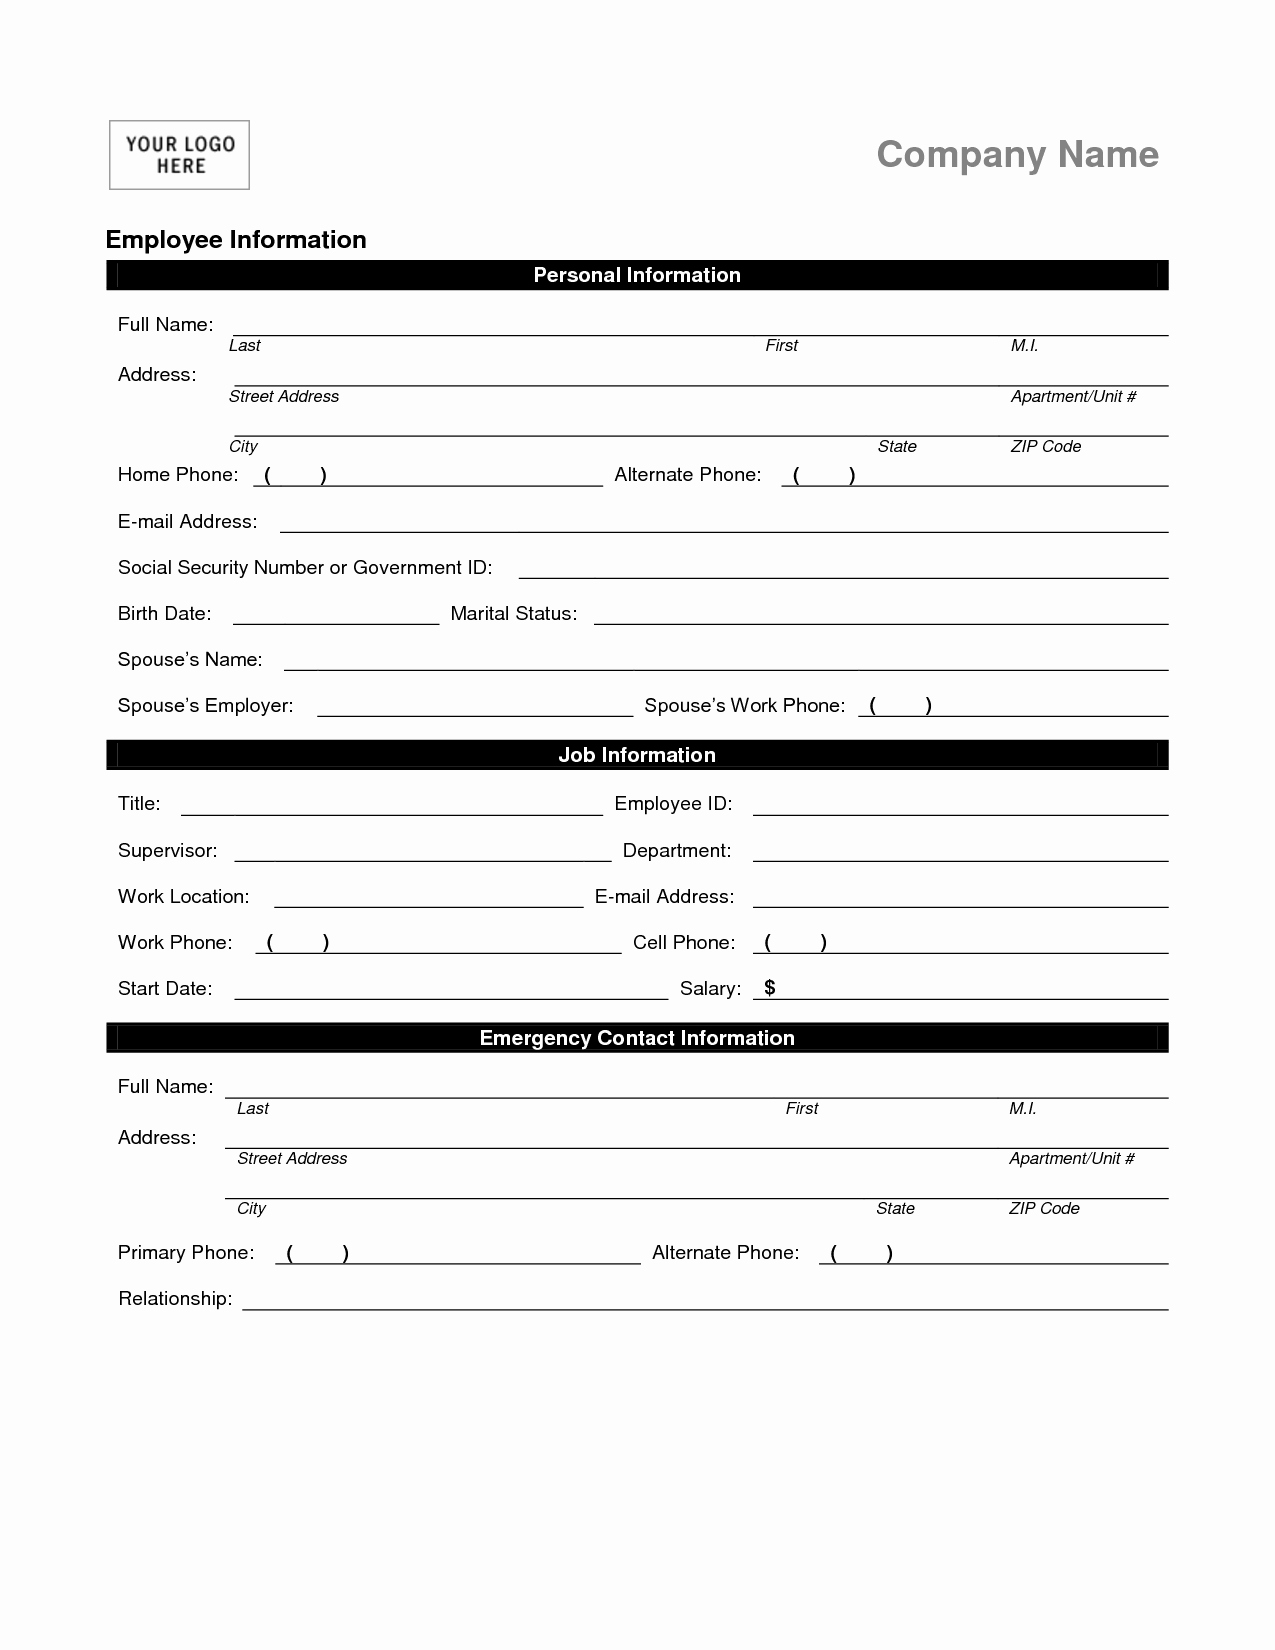 New Employee Information form Unique Employee Personal Information form Template